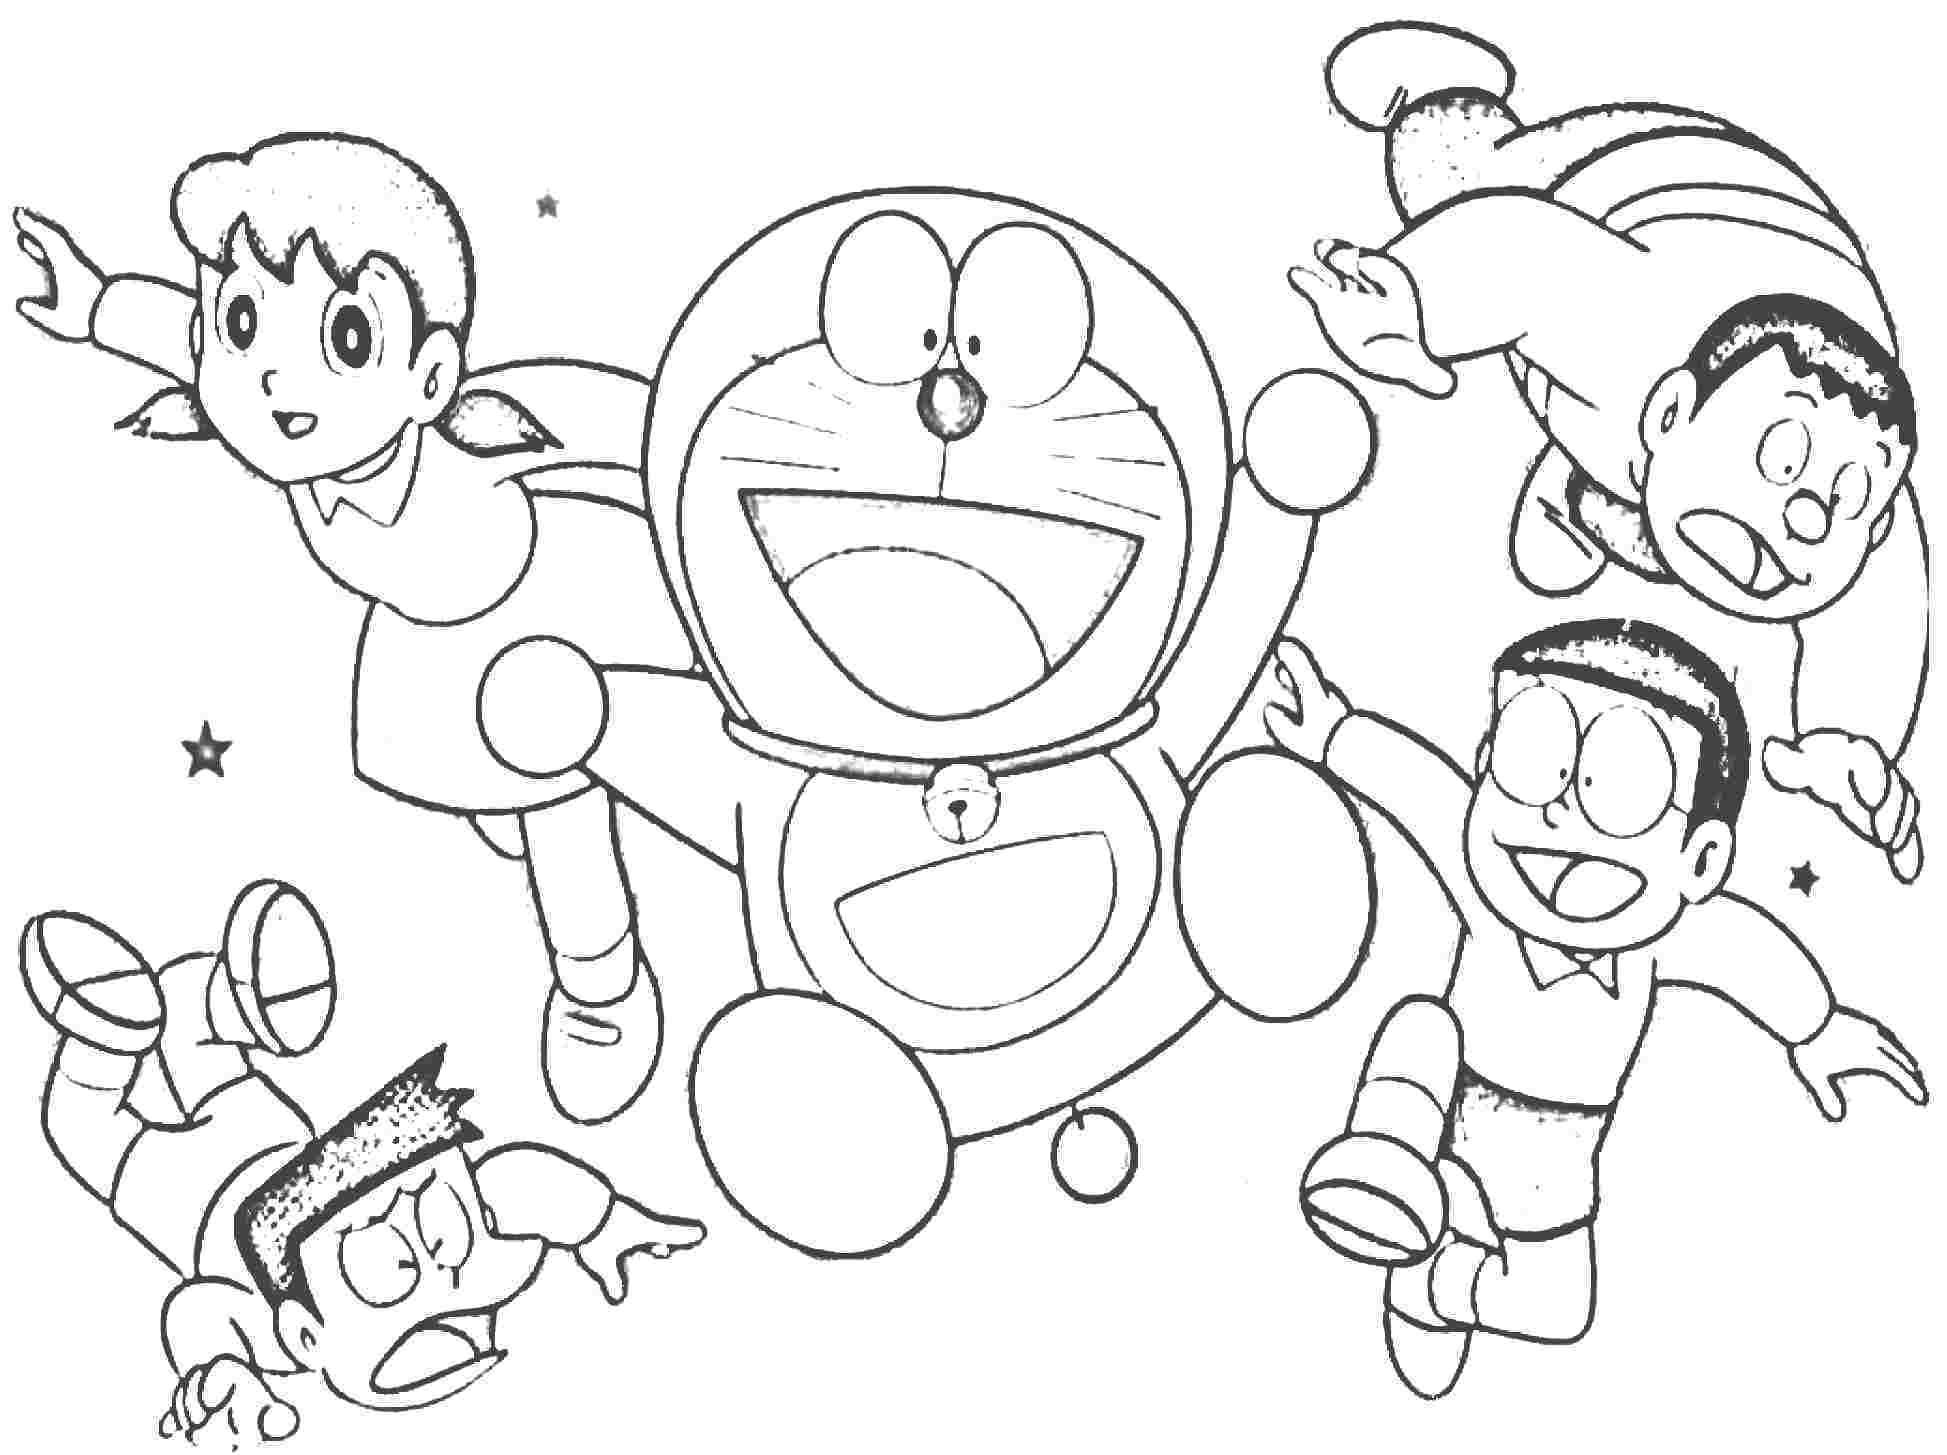 Cheerful Doraemon Coloring Book Makes Your Toddlers Love To Color Doraemon Is A Japanese Anime Series Writt Love Coloring Pages Coloring Pages Coloring Books